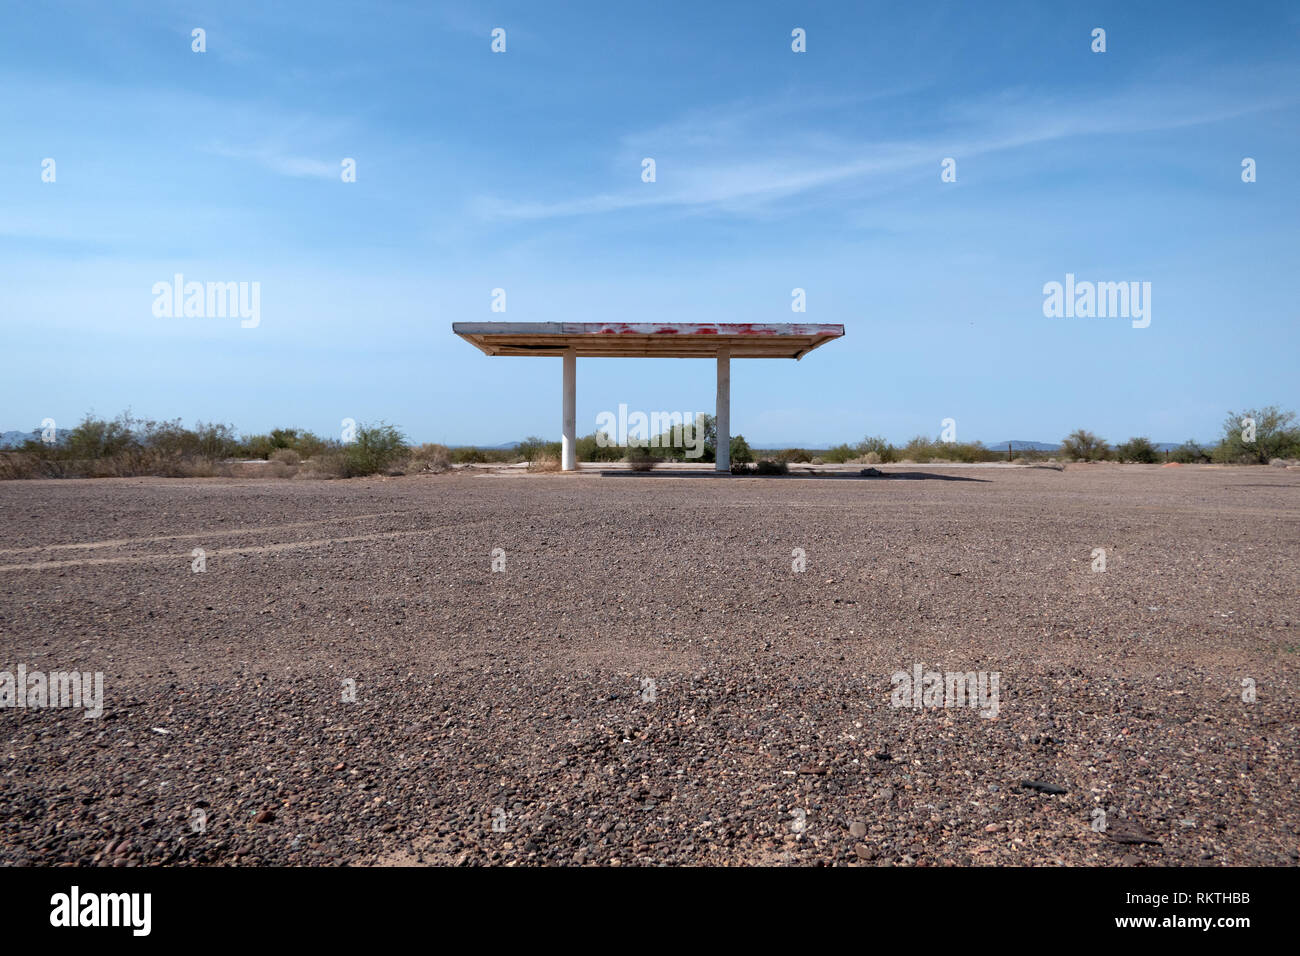 Abandoned Gas Station In Aztec Arizona United States Of America View Of American Landscape In The Southwest Usa And Ruins Of Old Building On A Us H Stock Photo Alamy